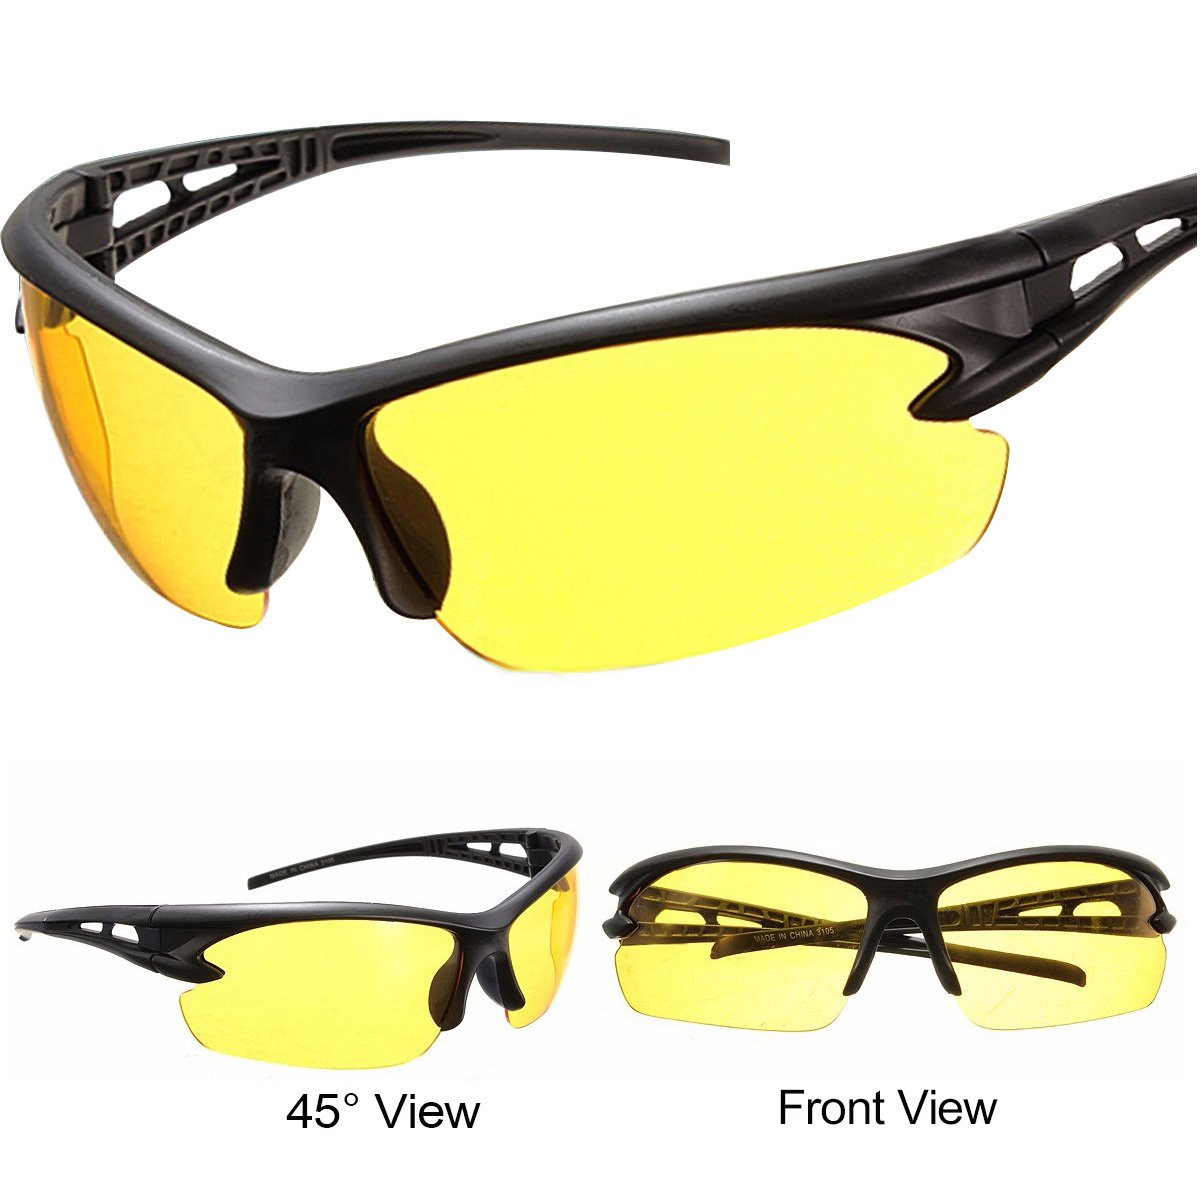 f5dcc722e17  YELLOW TINT LENS ▻The yellow shades with the Anti-Glare technology provide  you a HD clarity   safety street vision at night